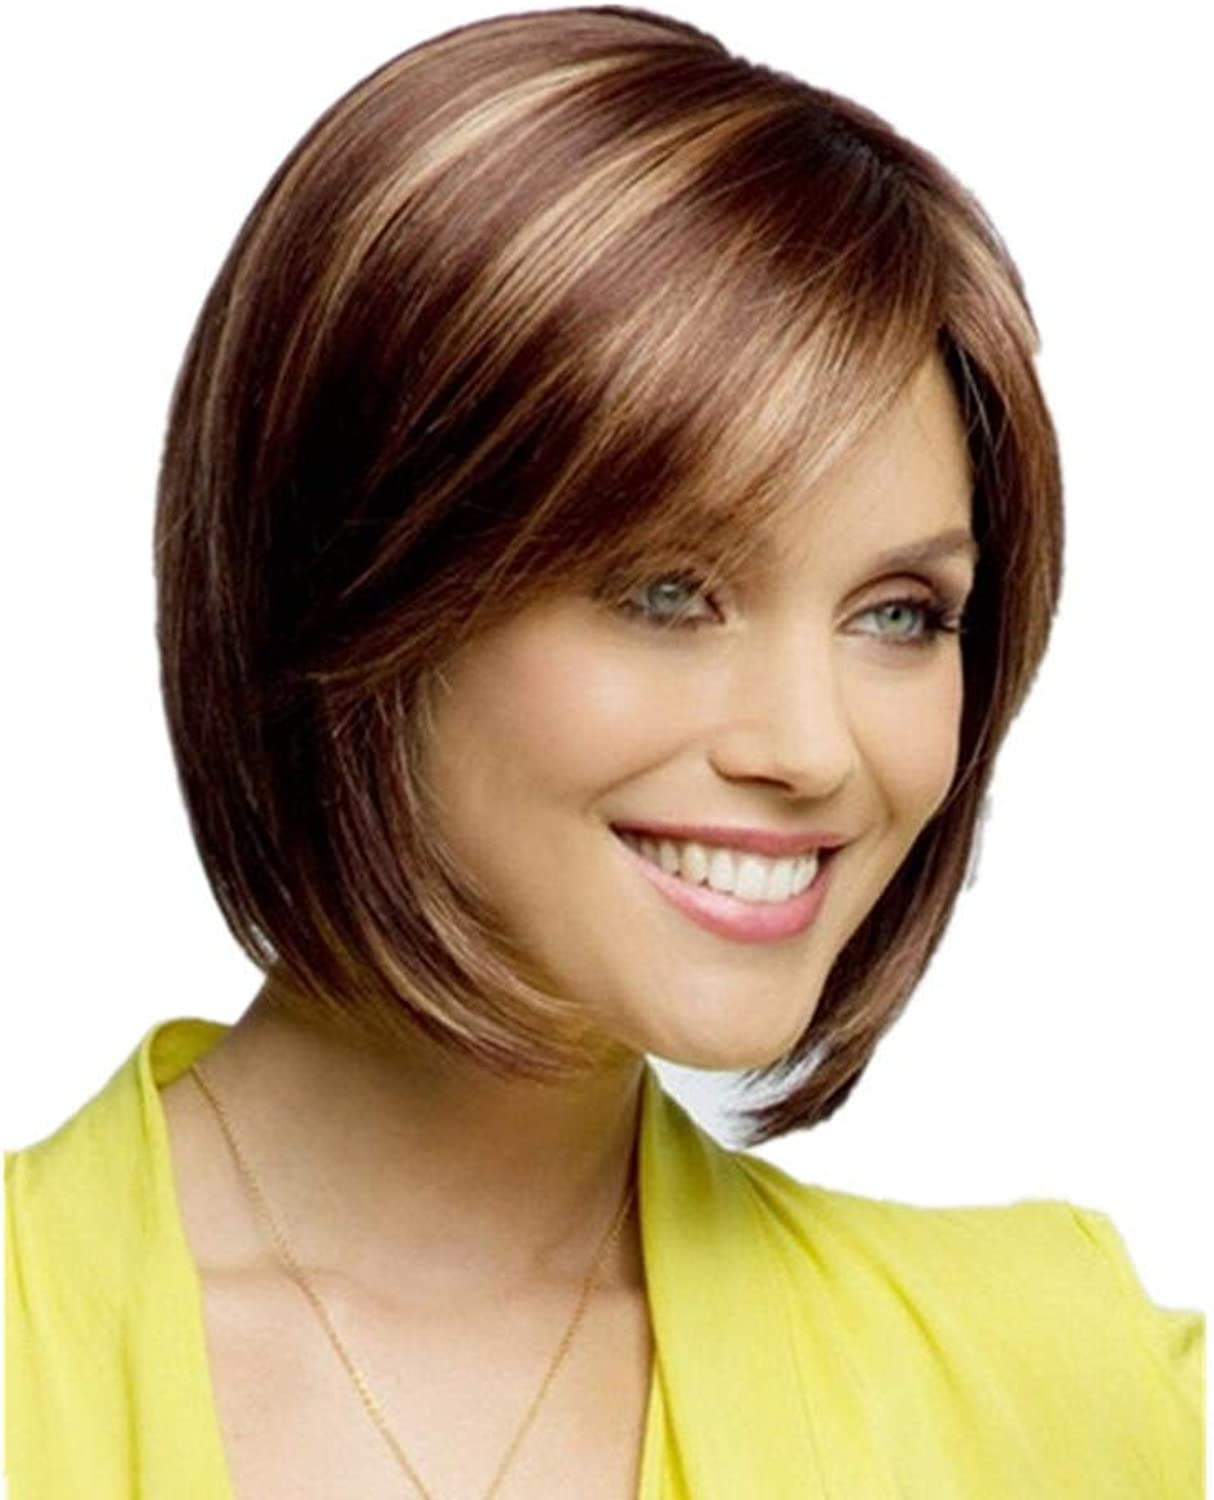 Short Hair Mixed color Straight Synthetic Hair Wig Full Hair Wigs for Women DIY Fun (color   Photo color)